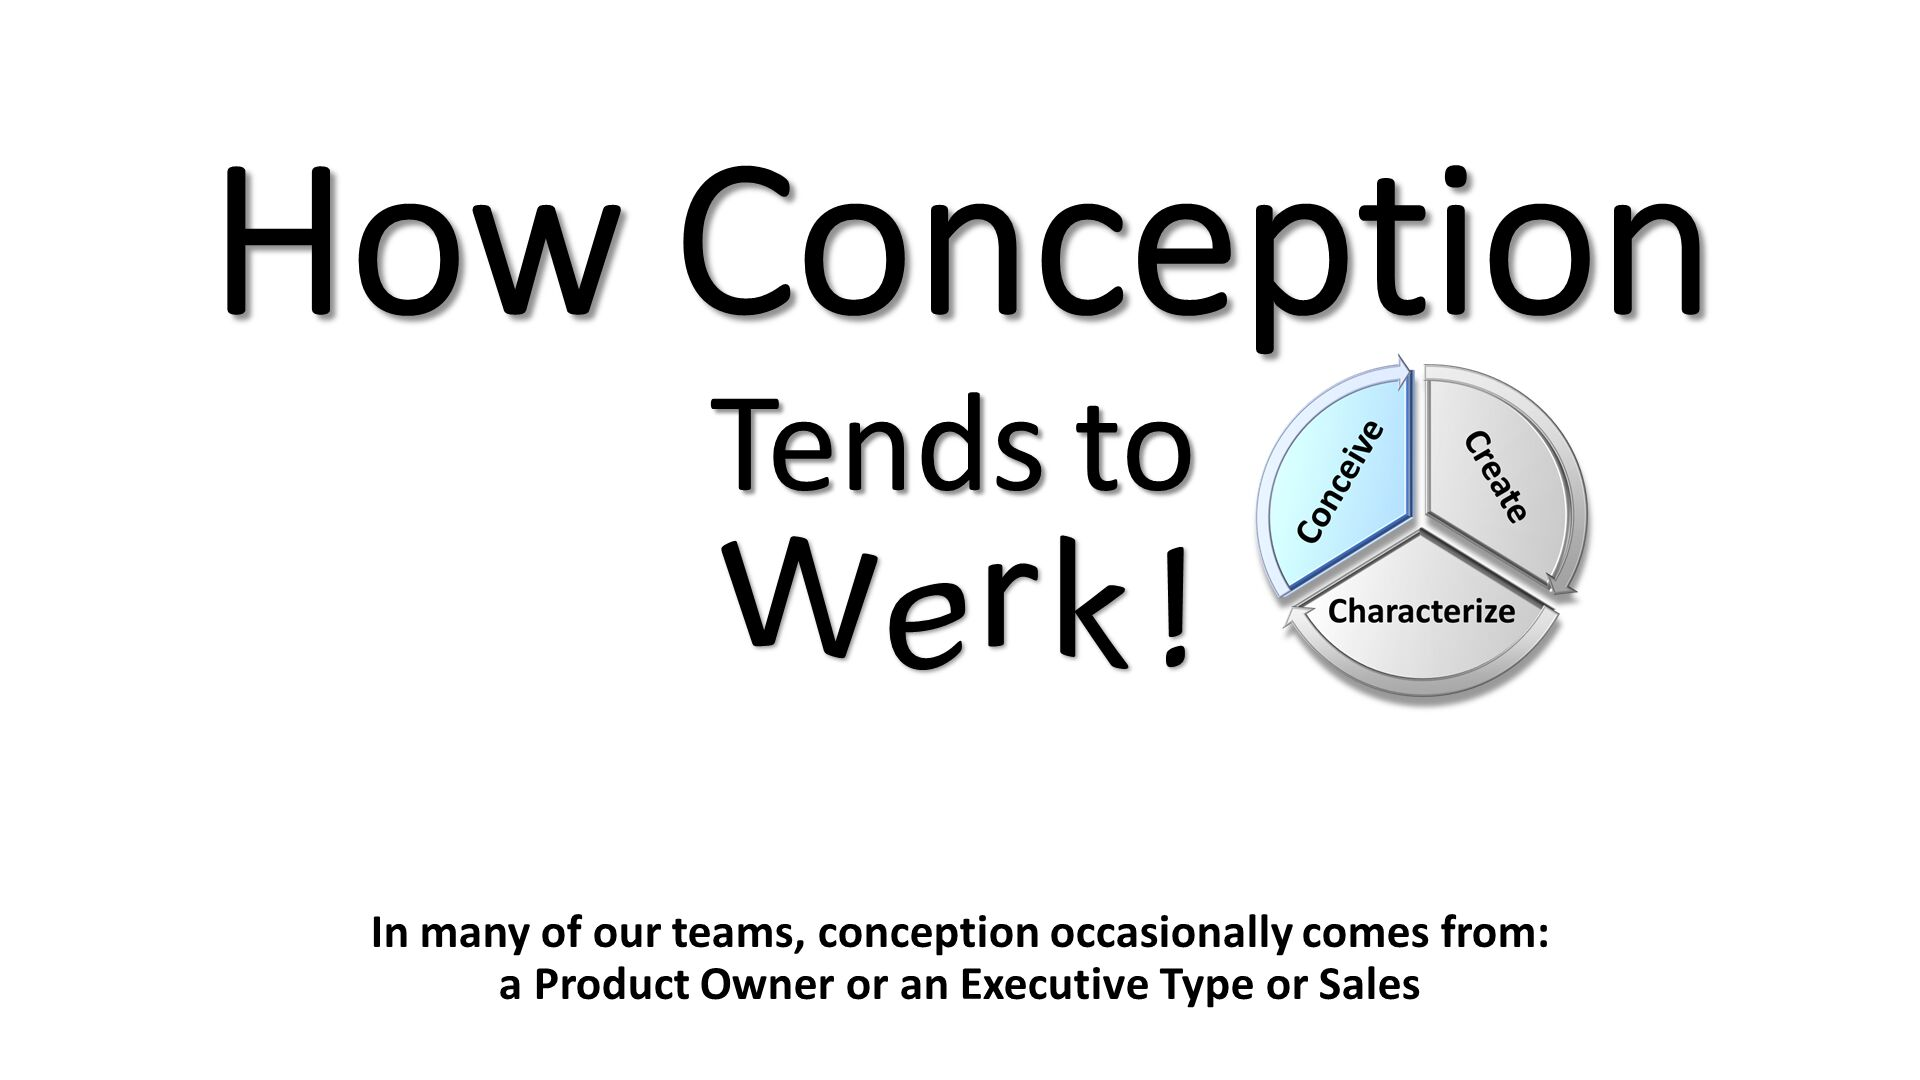 How Conception. In many of our teams, conception occasionally comes from:a Product Owner or an Executive Type or Sales . Werk!. Tends to.